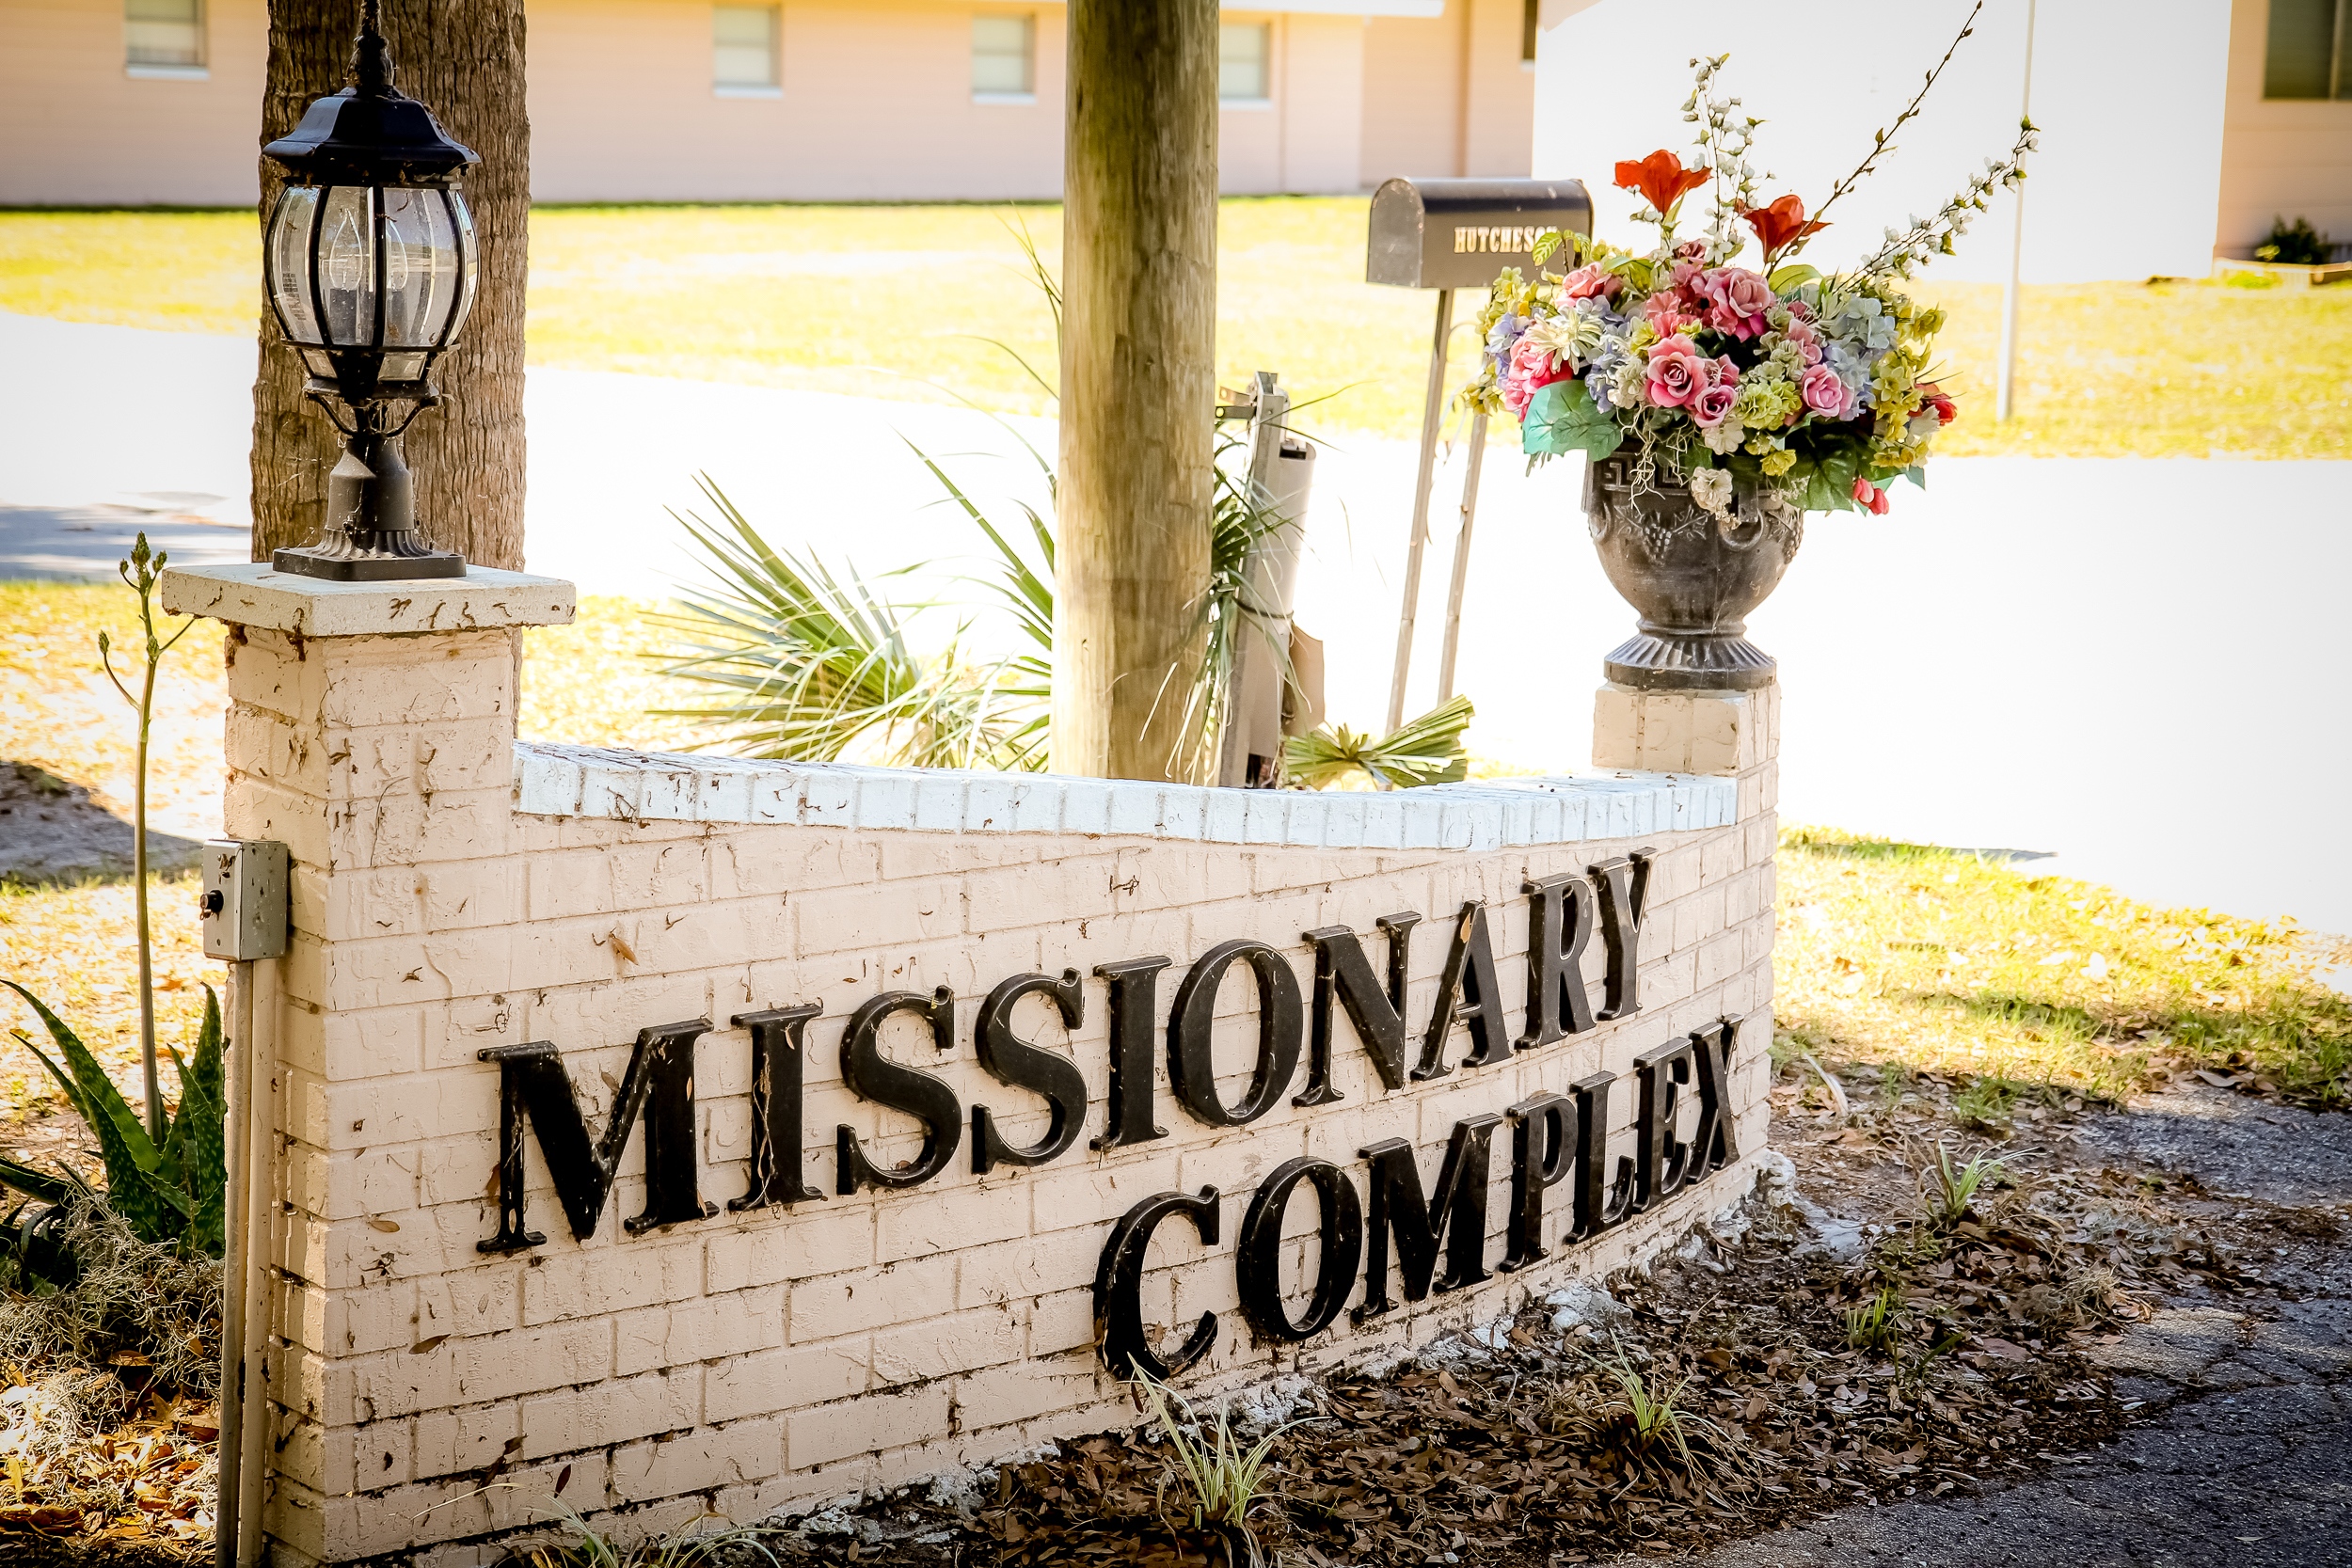 Missions Complex